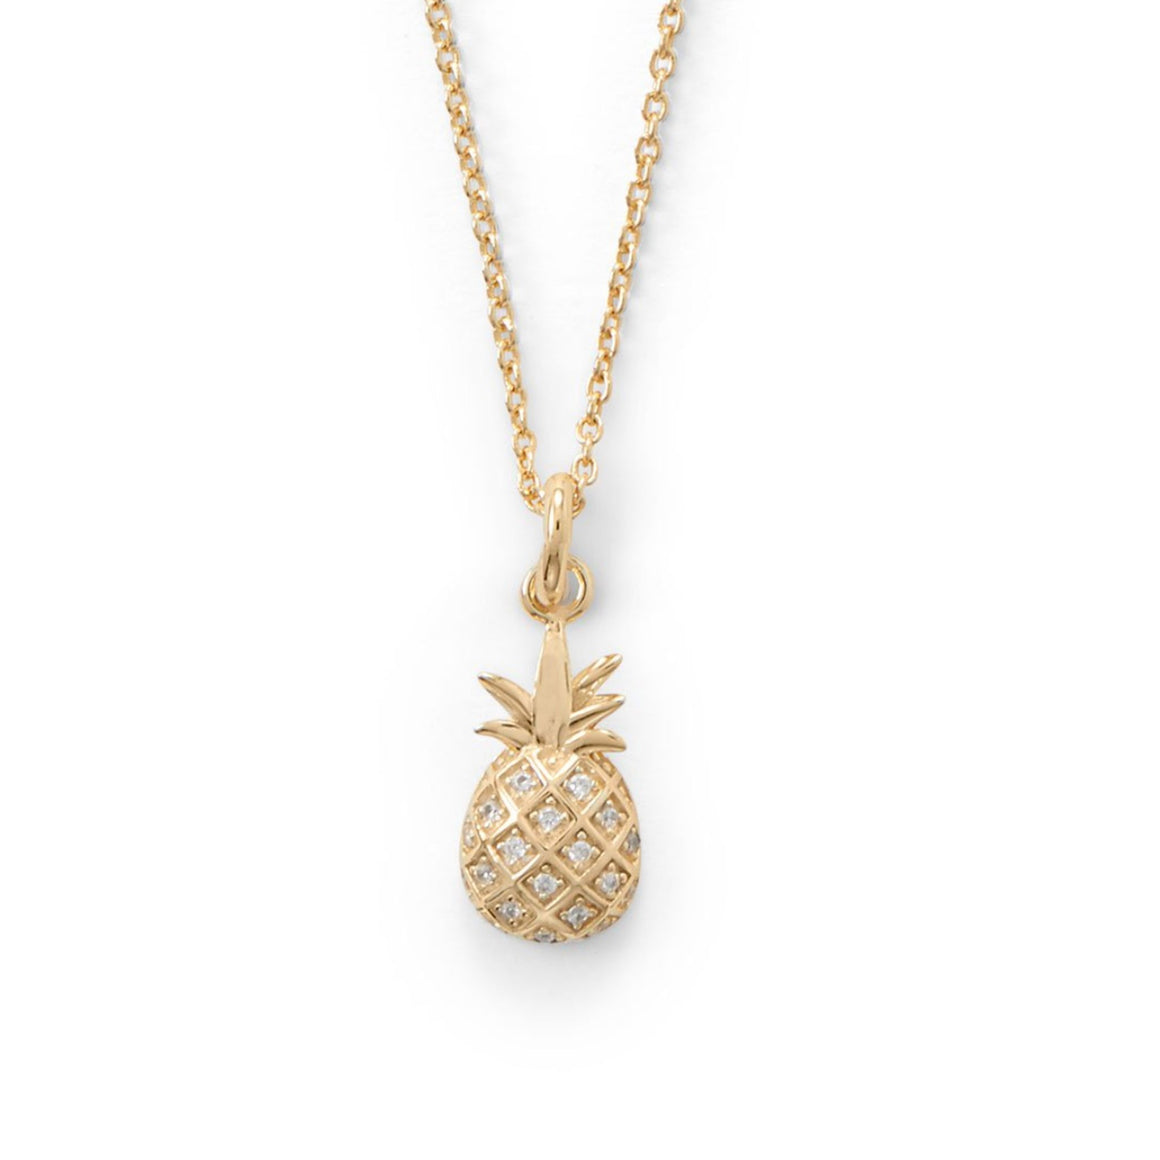 Dainty Pineapple Necklace - Pretty Collected